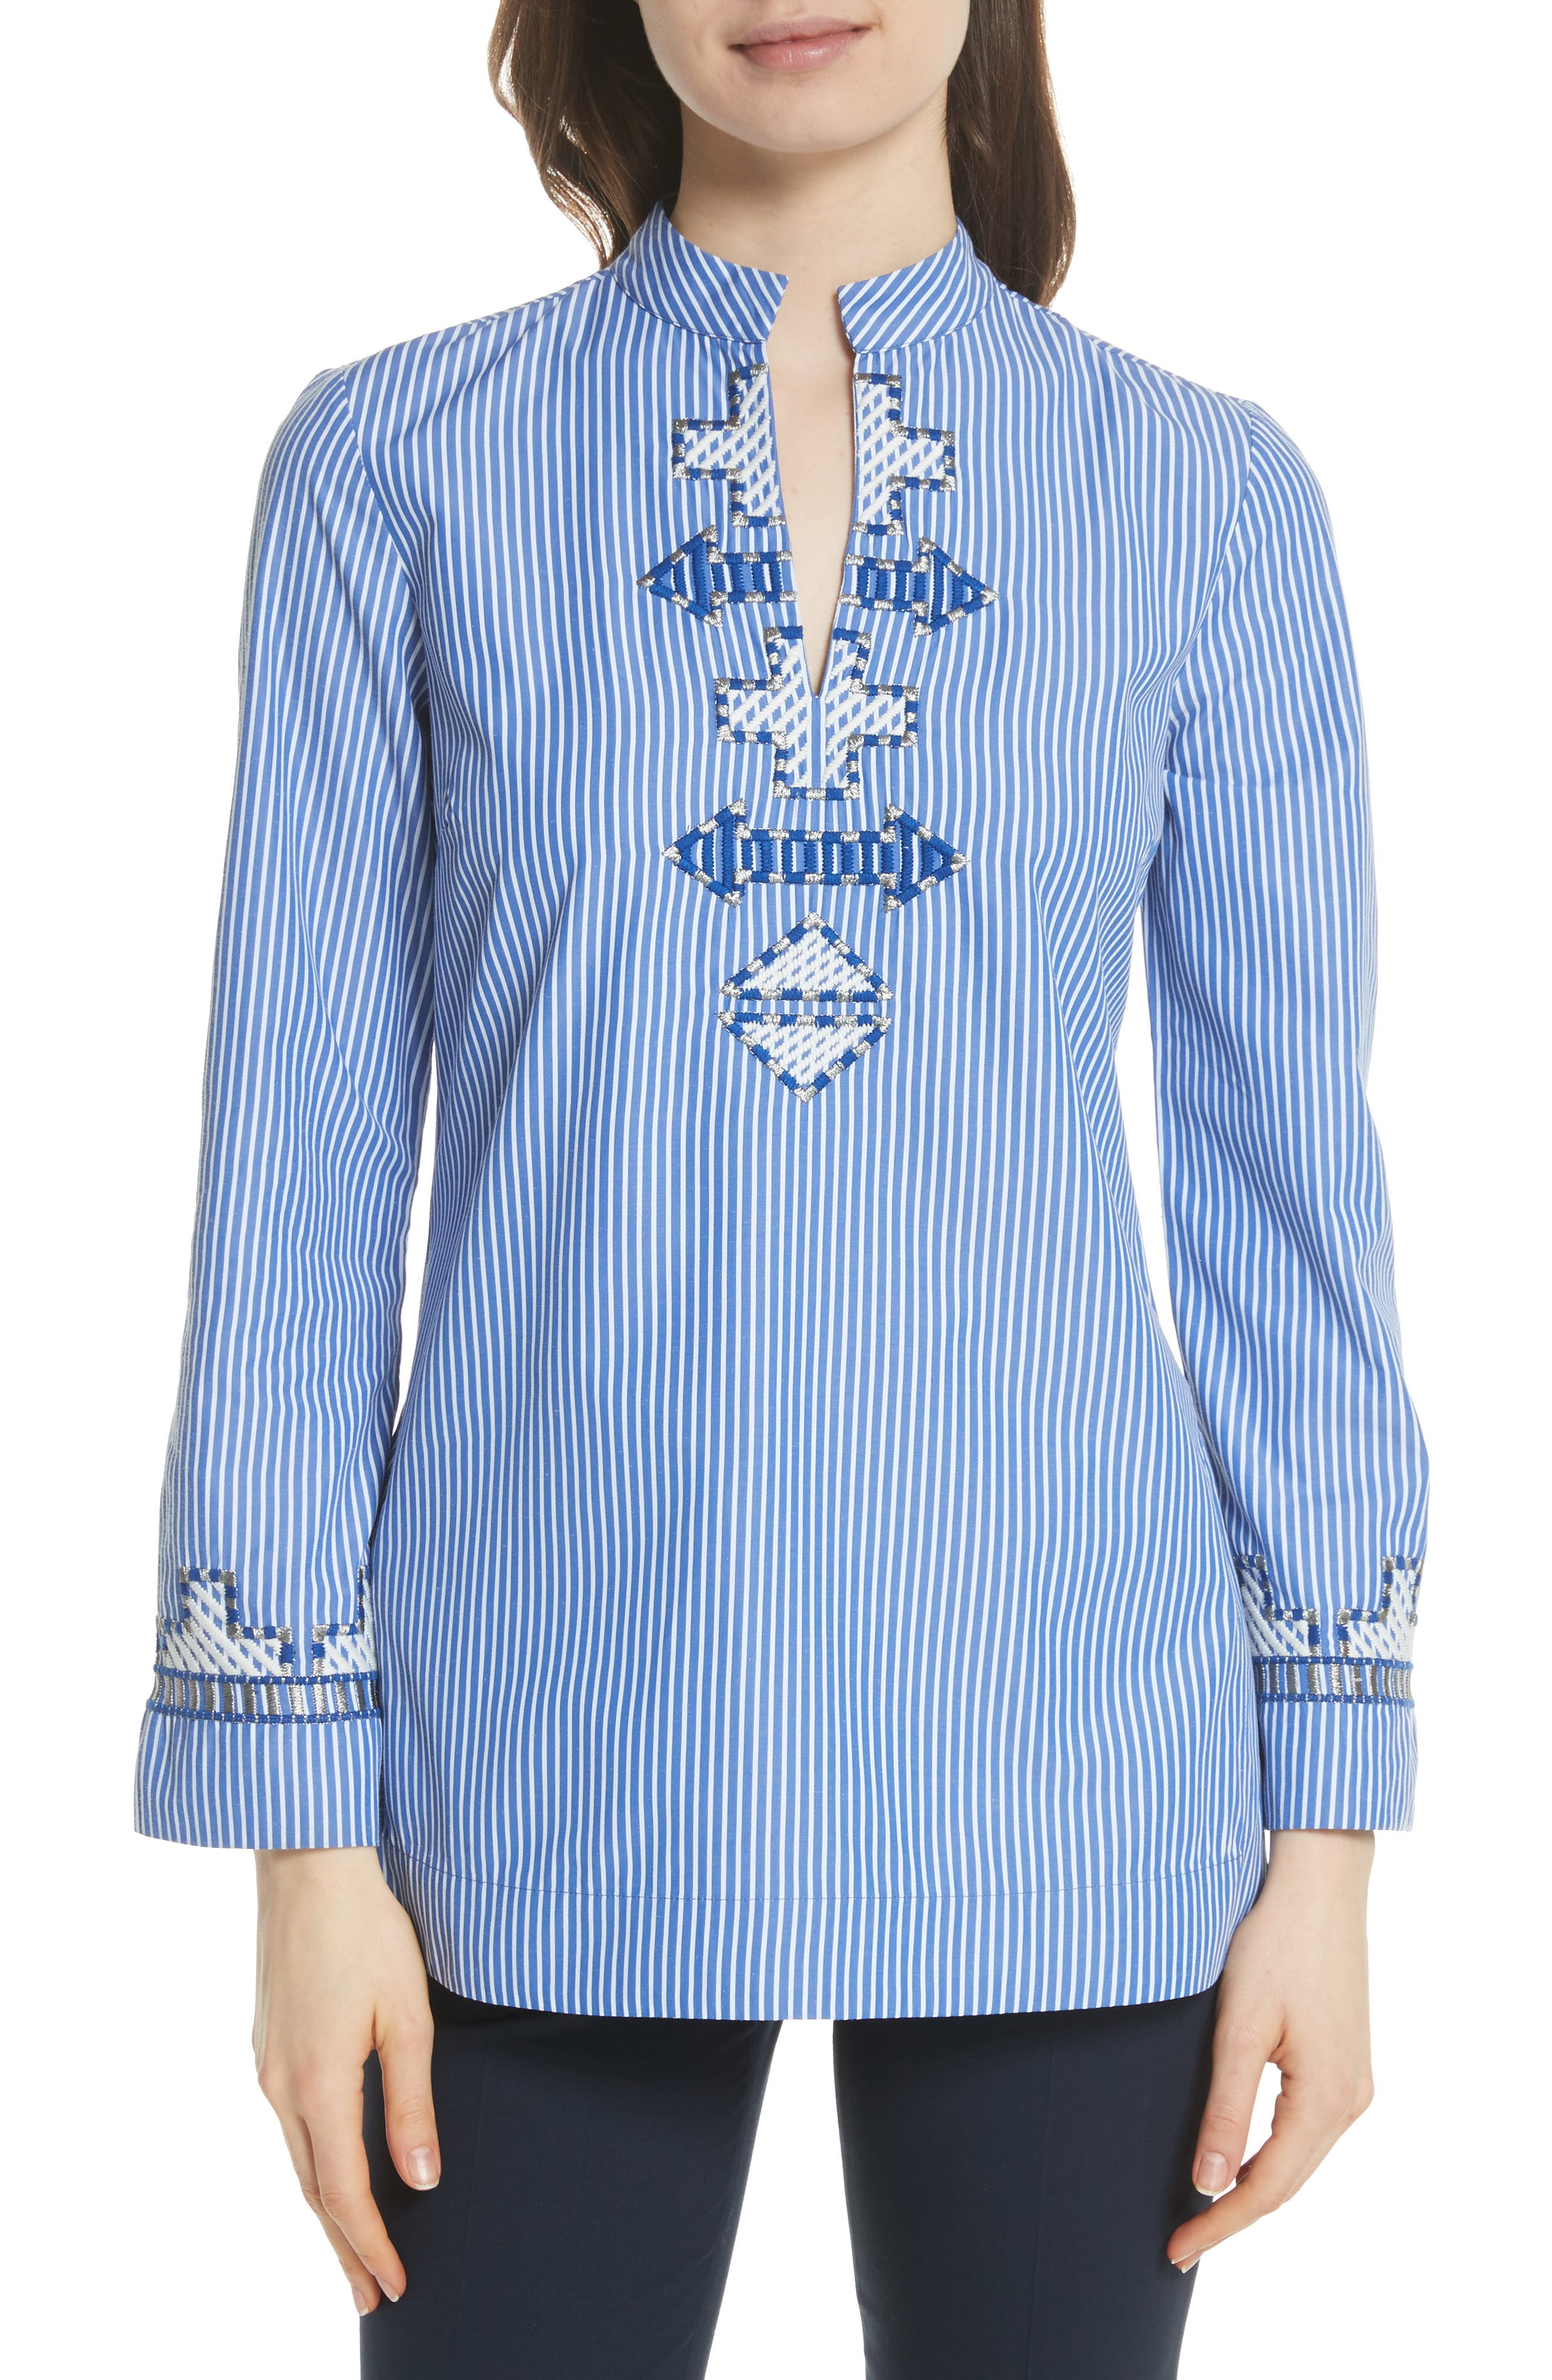 Tory Embroidered Stripe Tunic,                         Main,                         color, Blue/ White